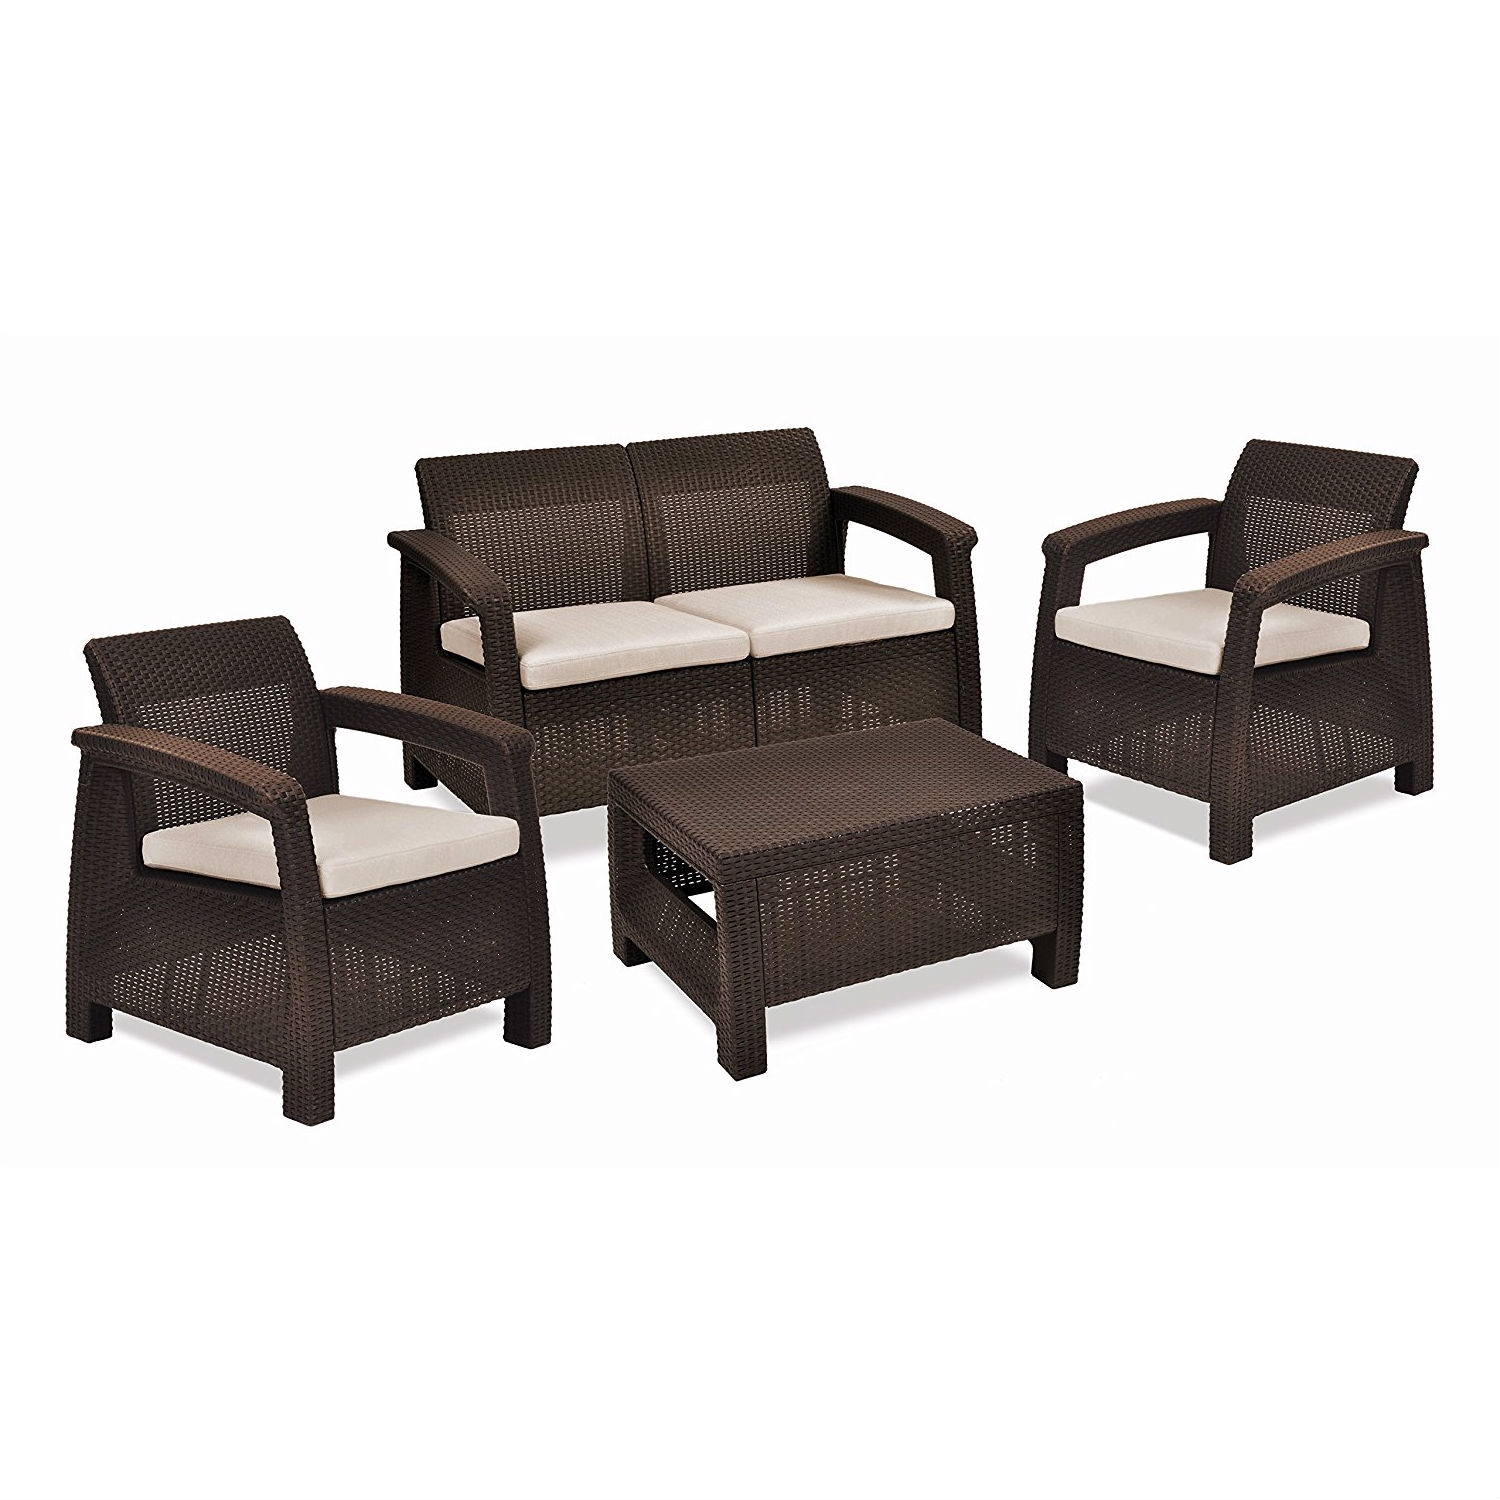 Brown Resin Wicker Patio Furniture Set with f White Cushions